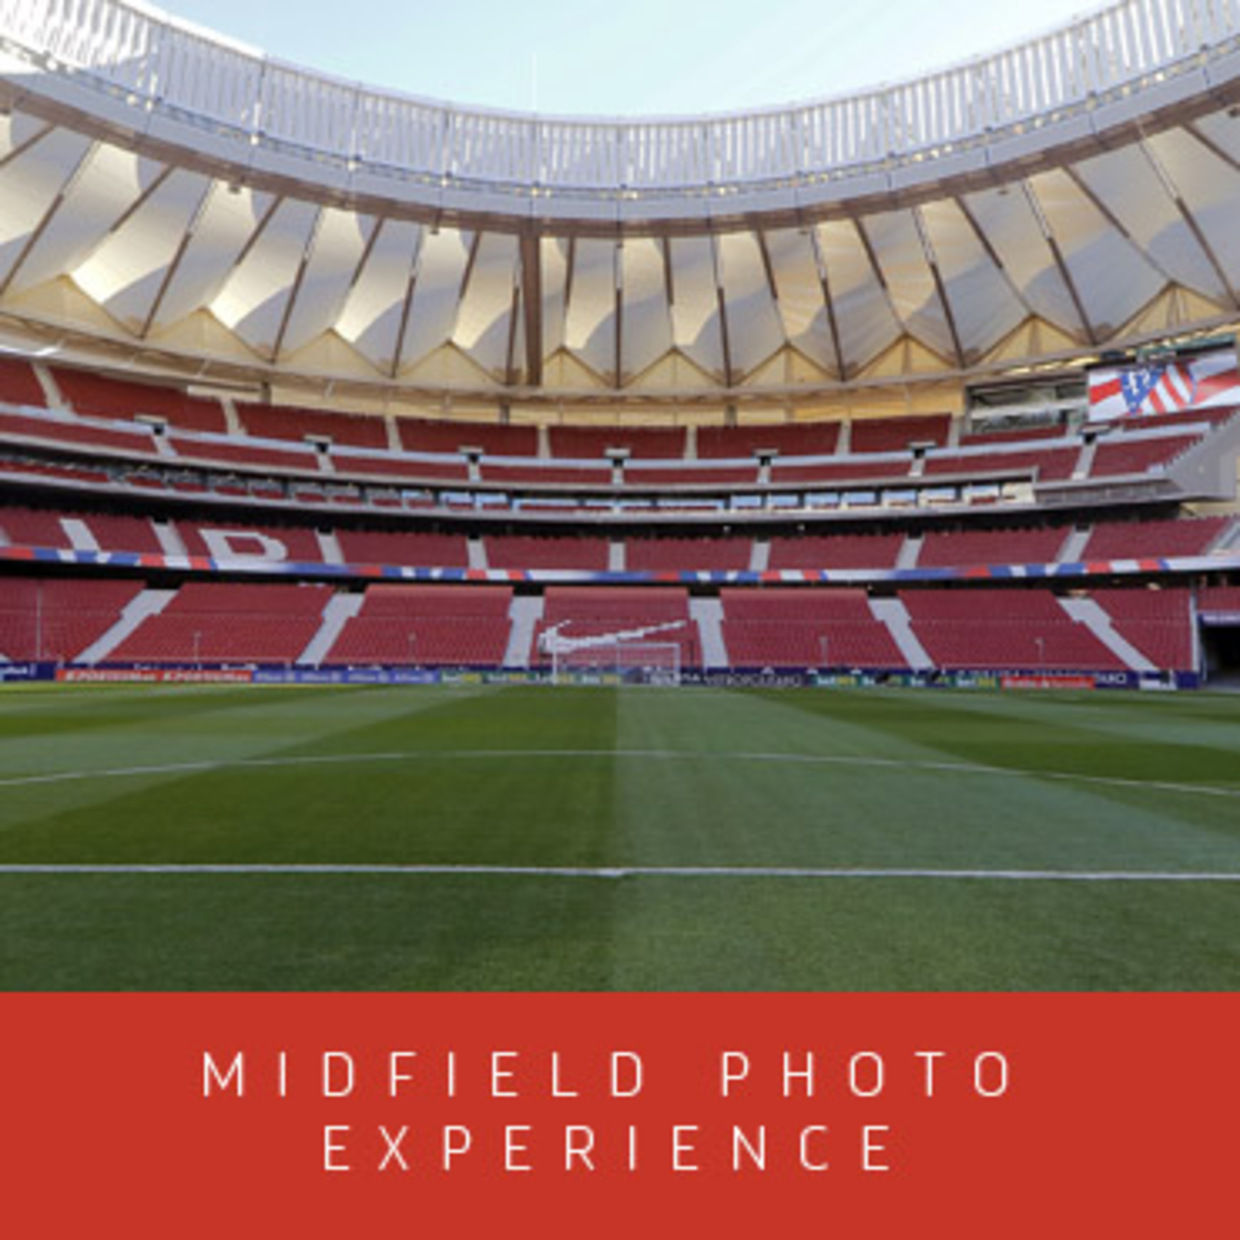 MIDFIELD PHOTO EXPERIENCE